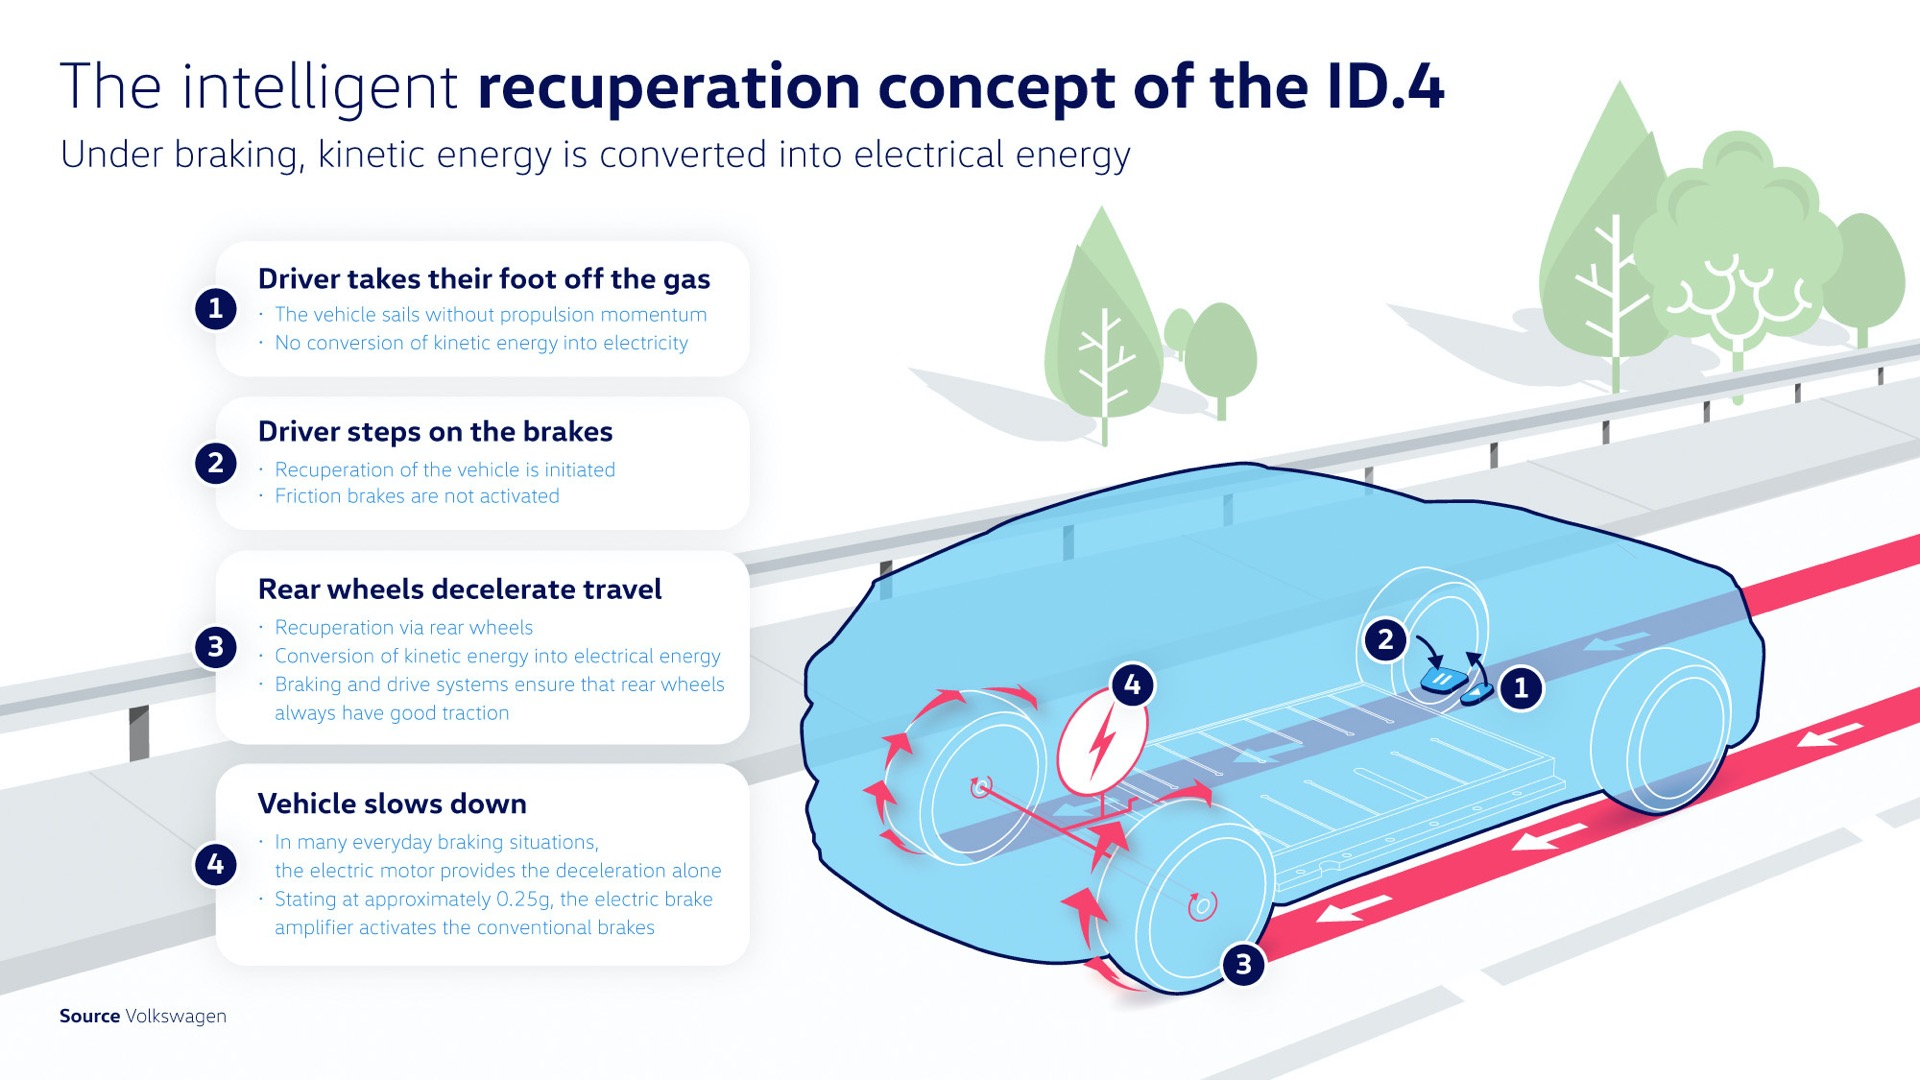 Brake Or Coast? The Id.4ís Intelligent Energy Recuperation Conce